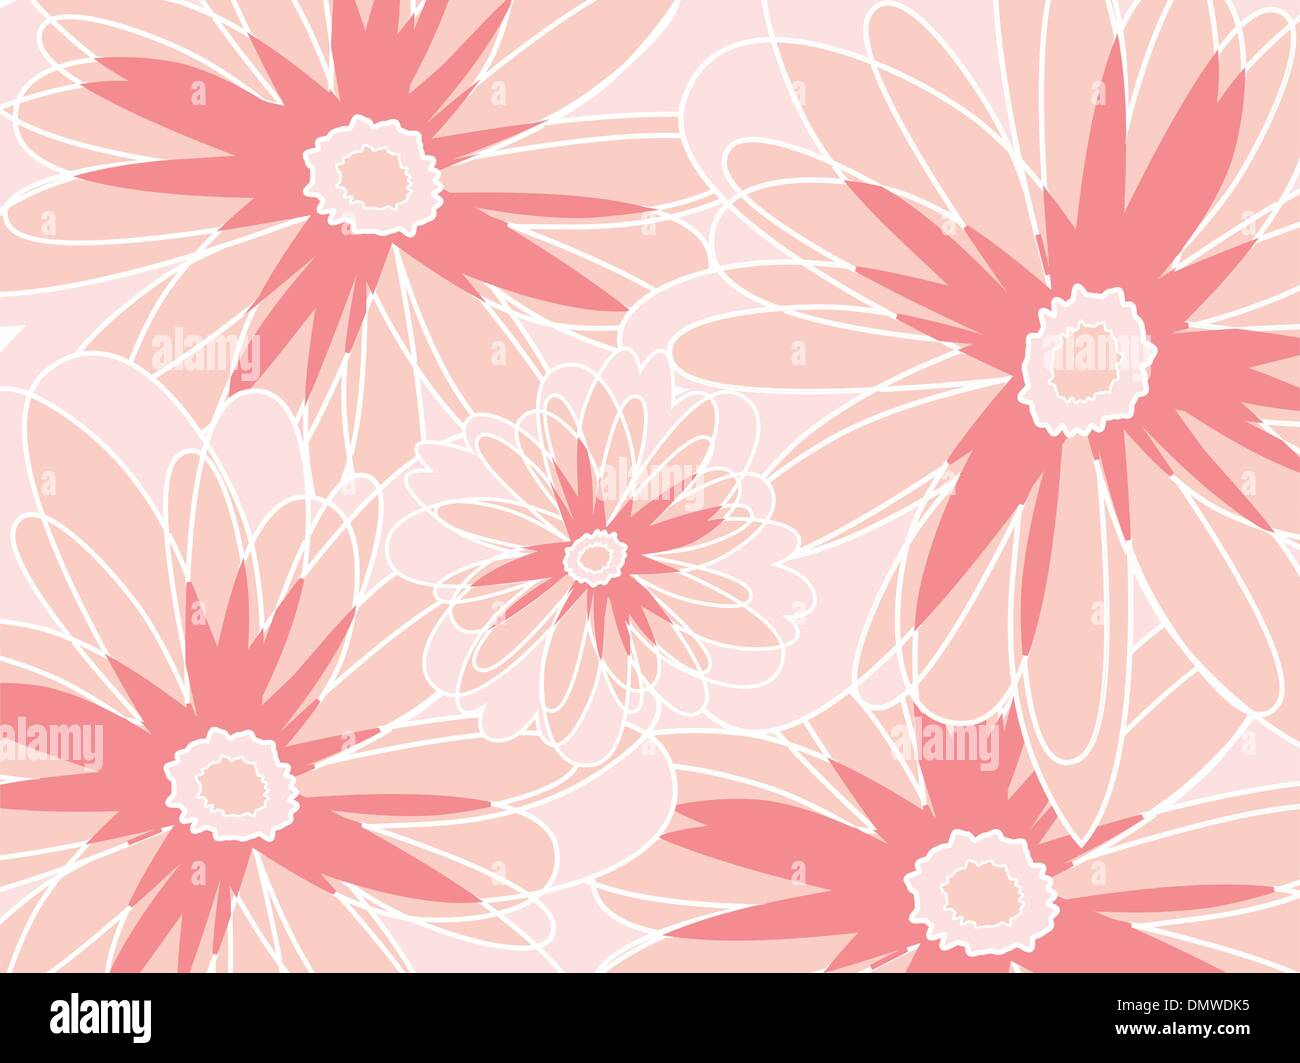 Unduh 72 Background Abstract Flower HD Terbaru